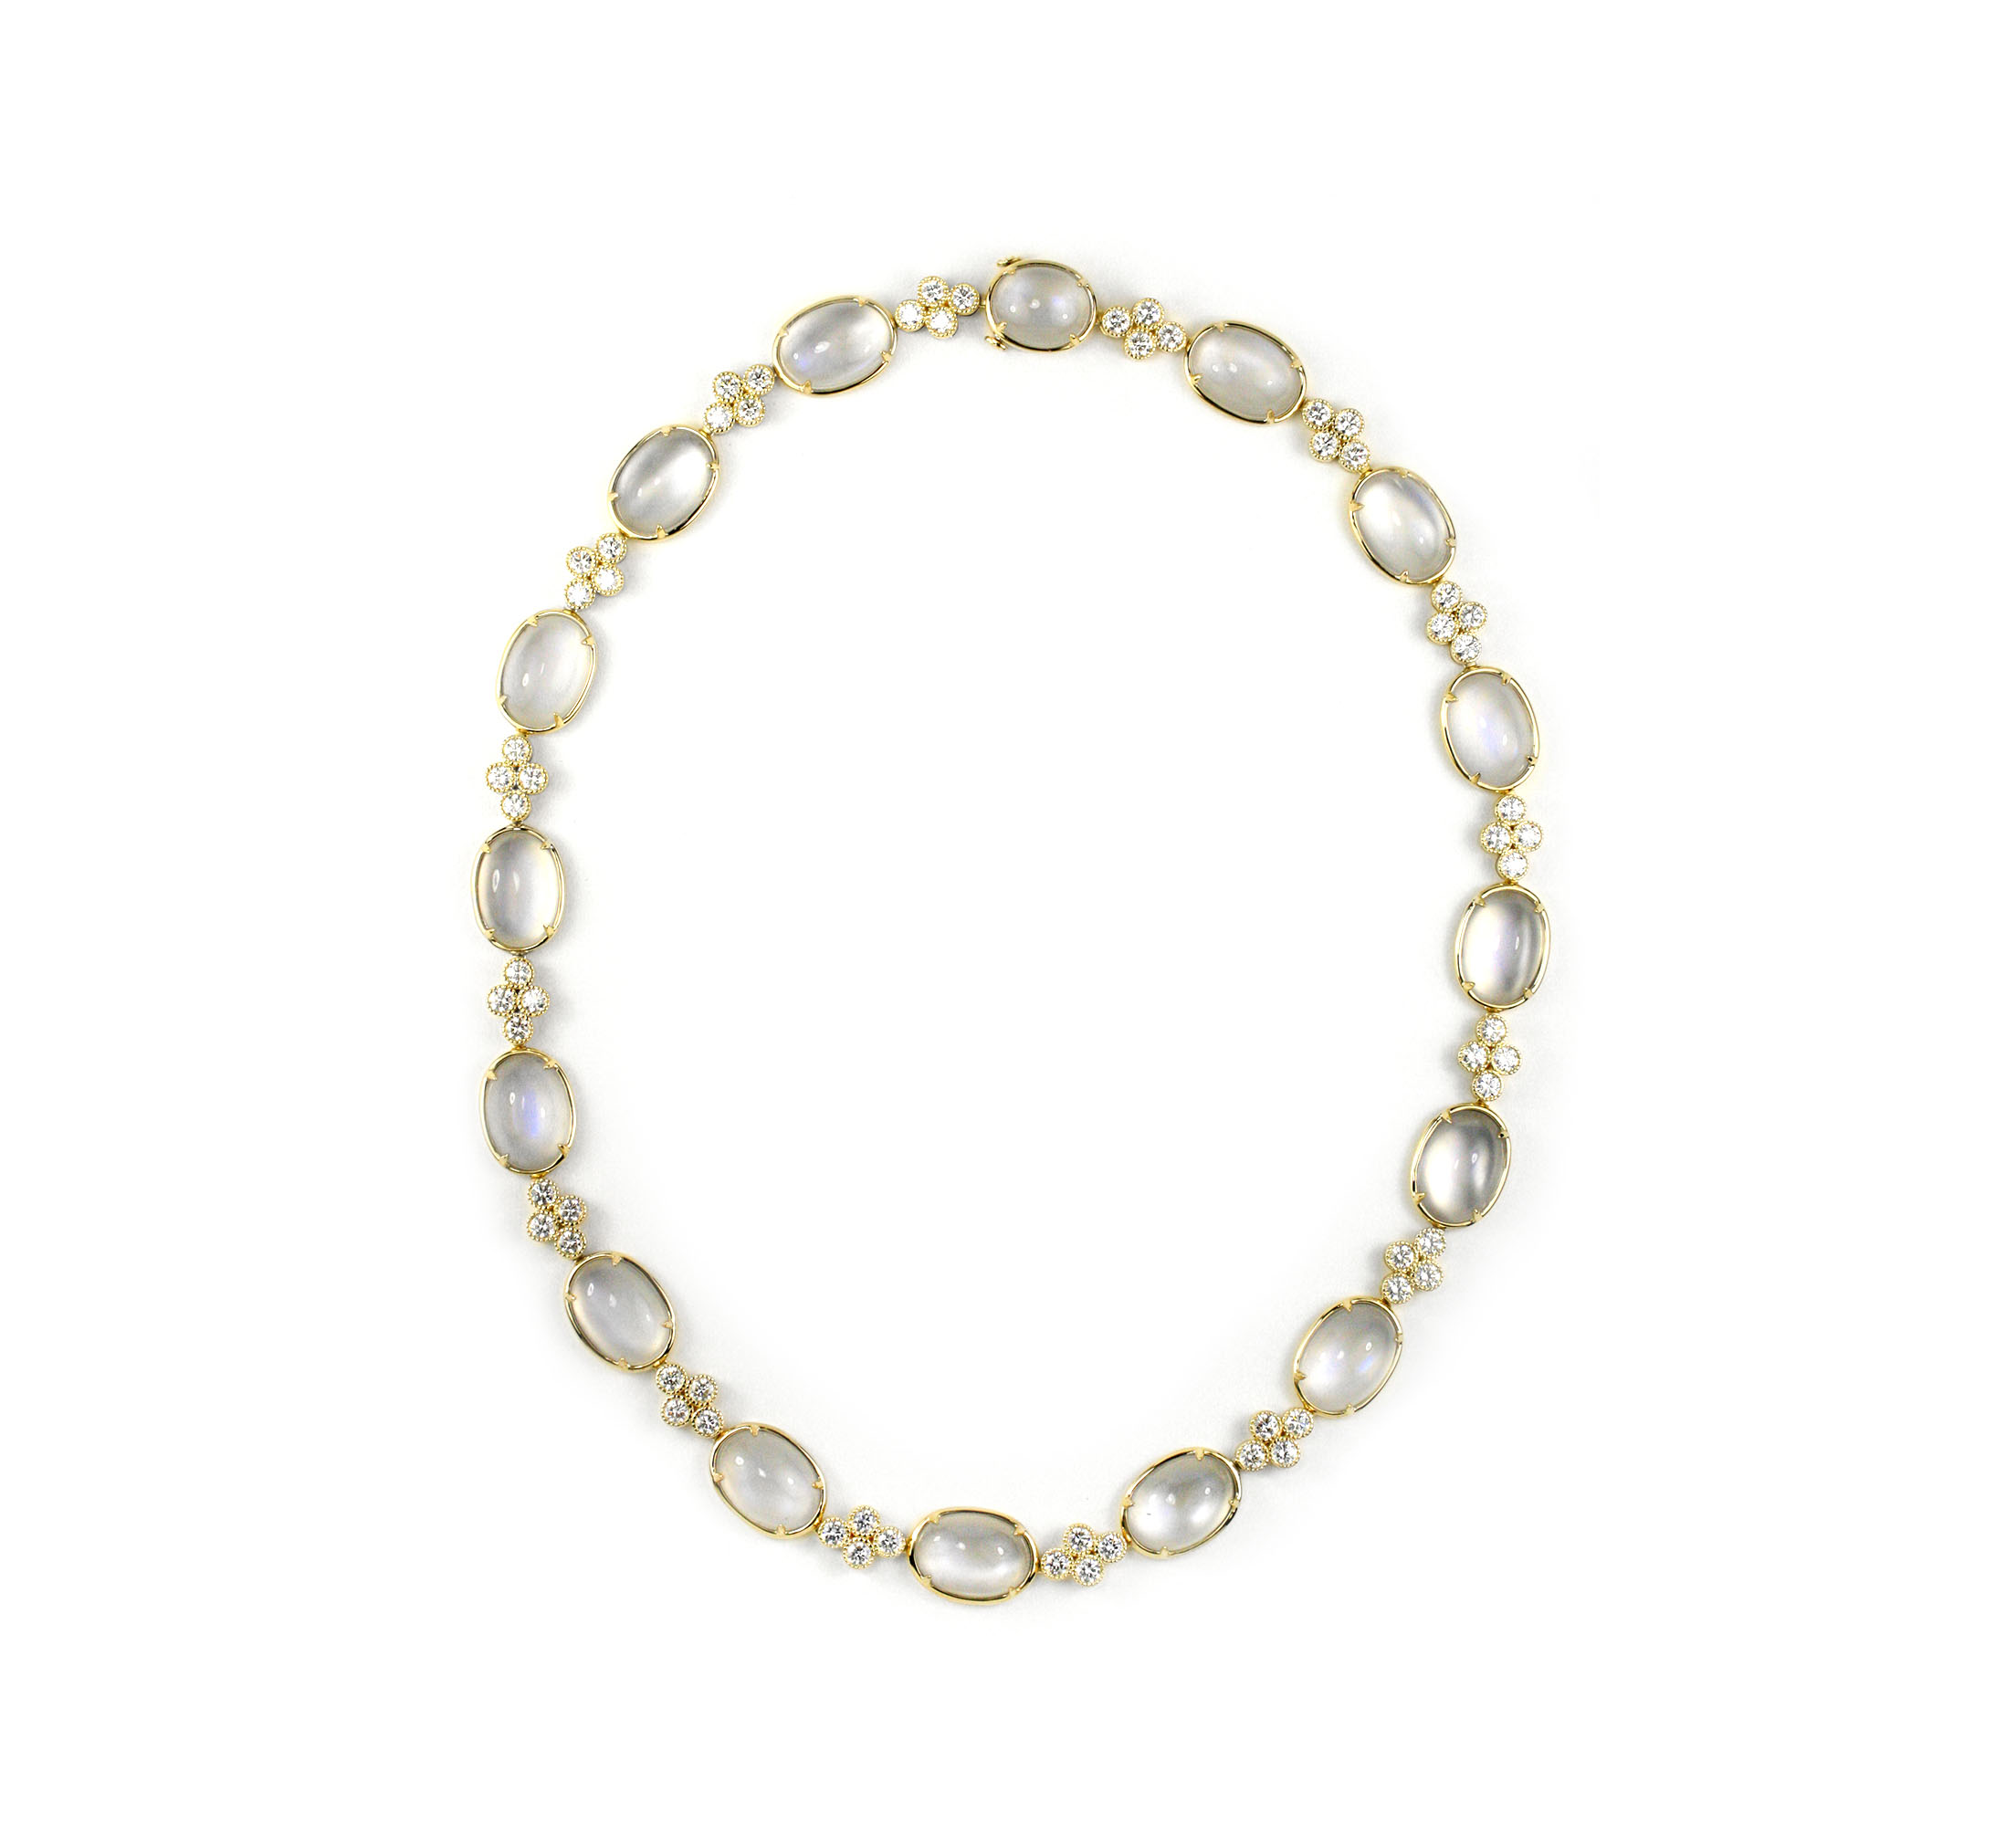 moonstone necklace2.jpg